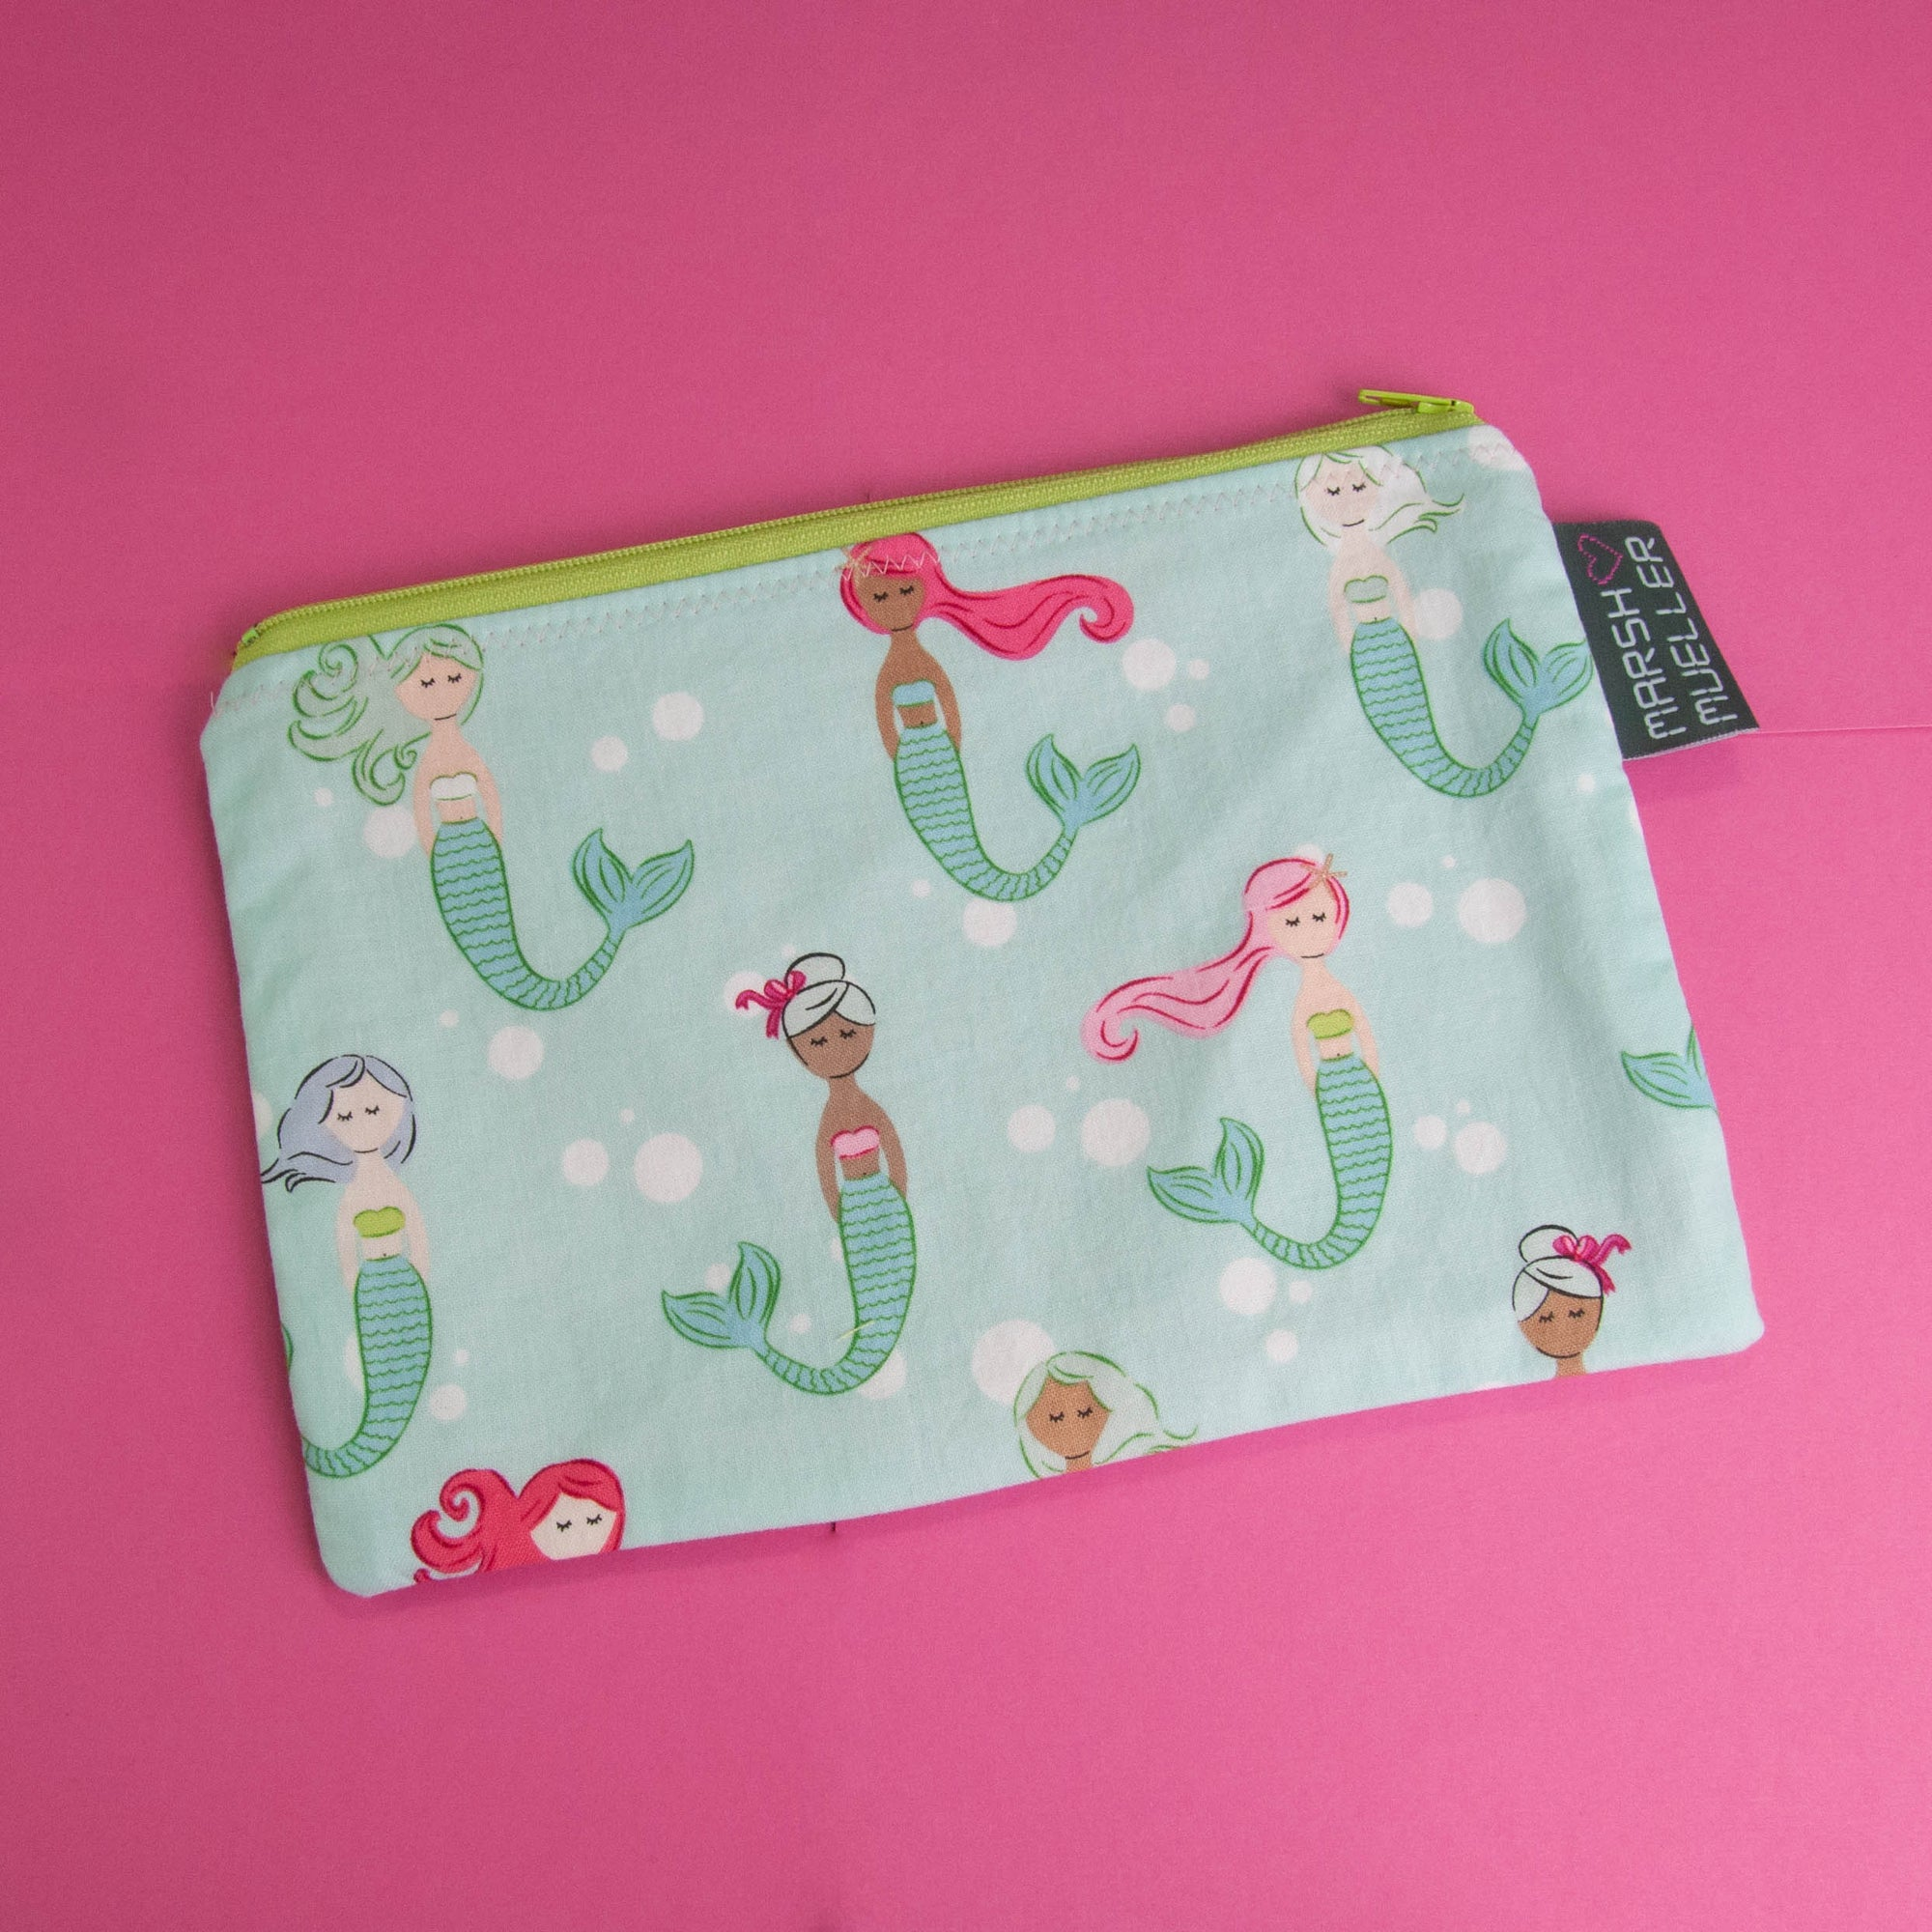 Image of Marshmueller Zipper Pouch made from a mermaids fabric. Image is on a pink background.